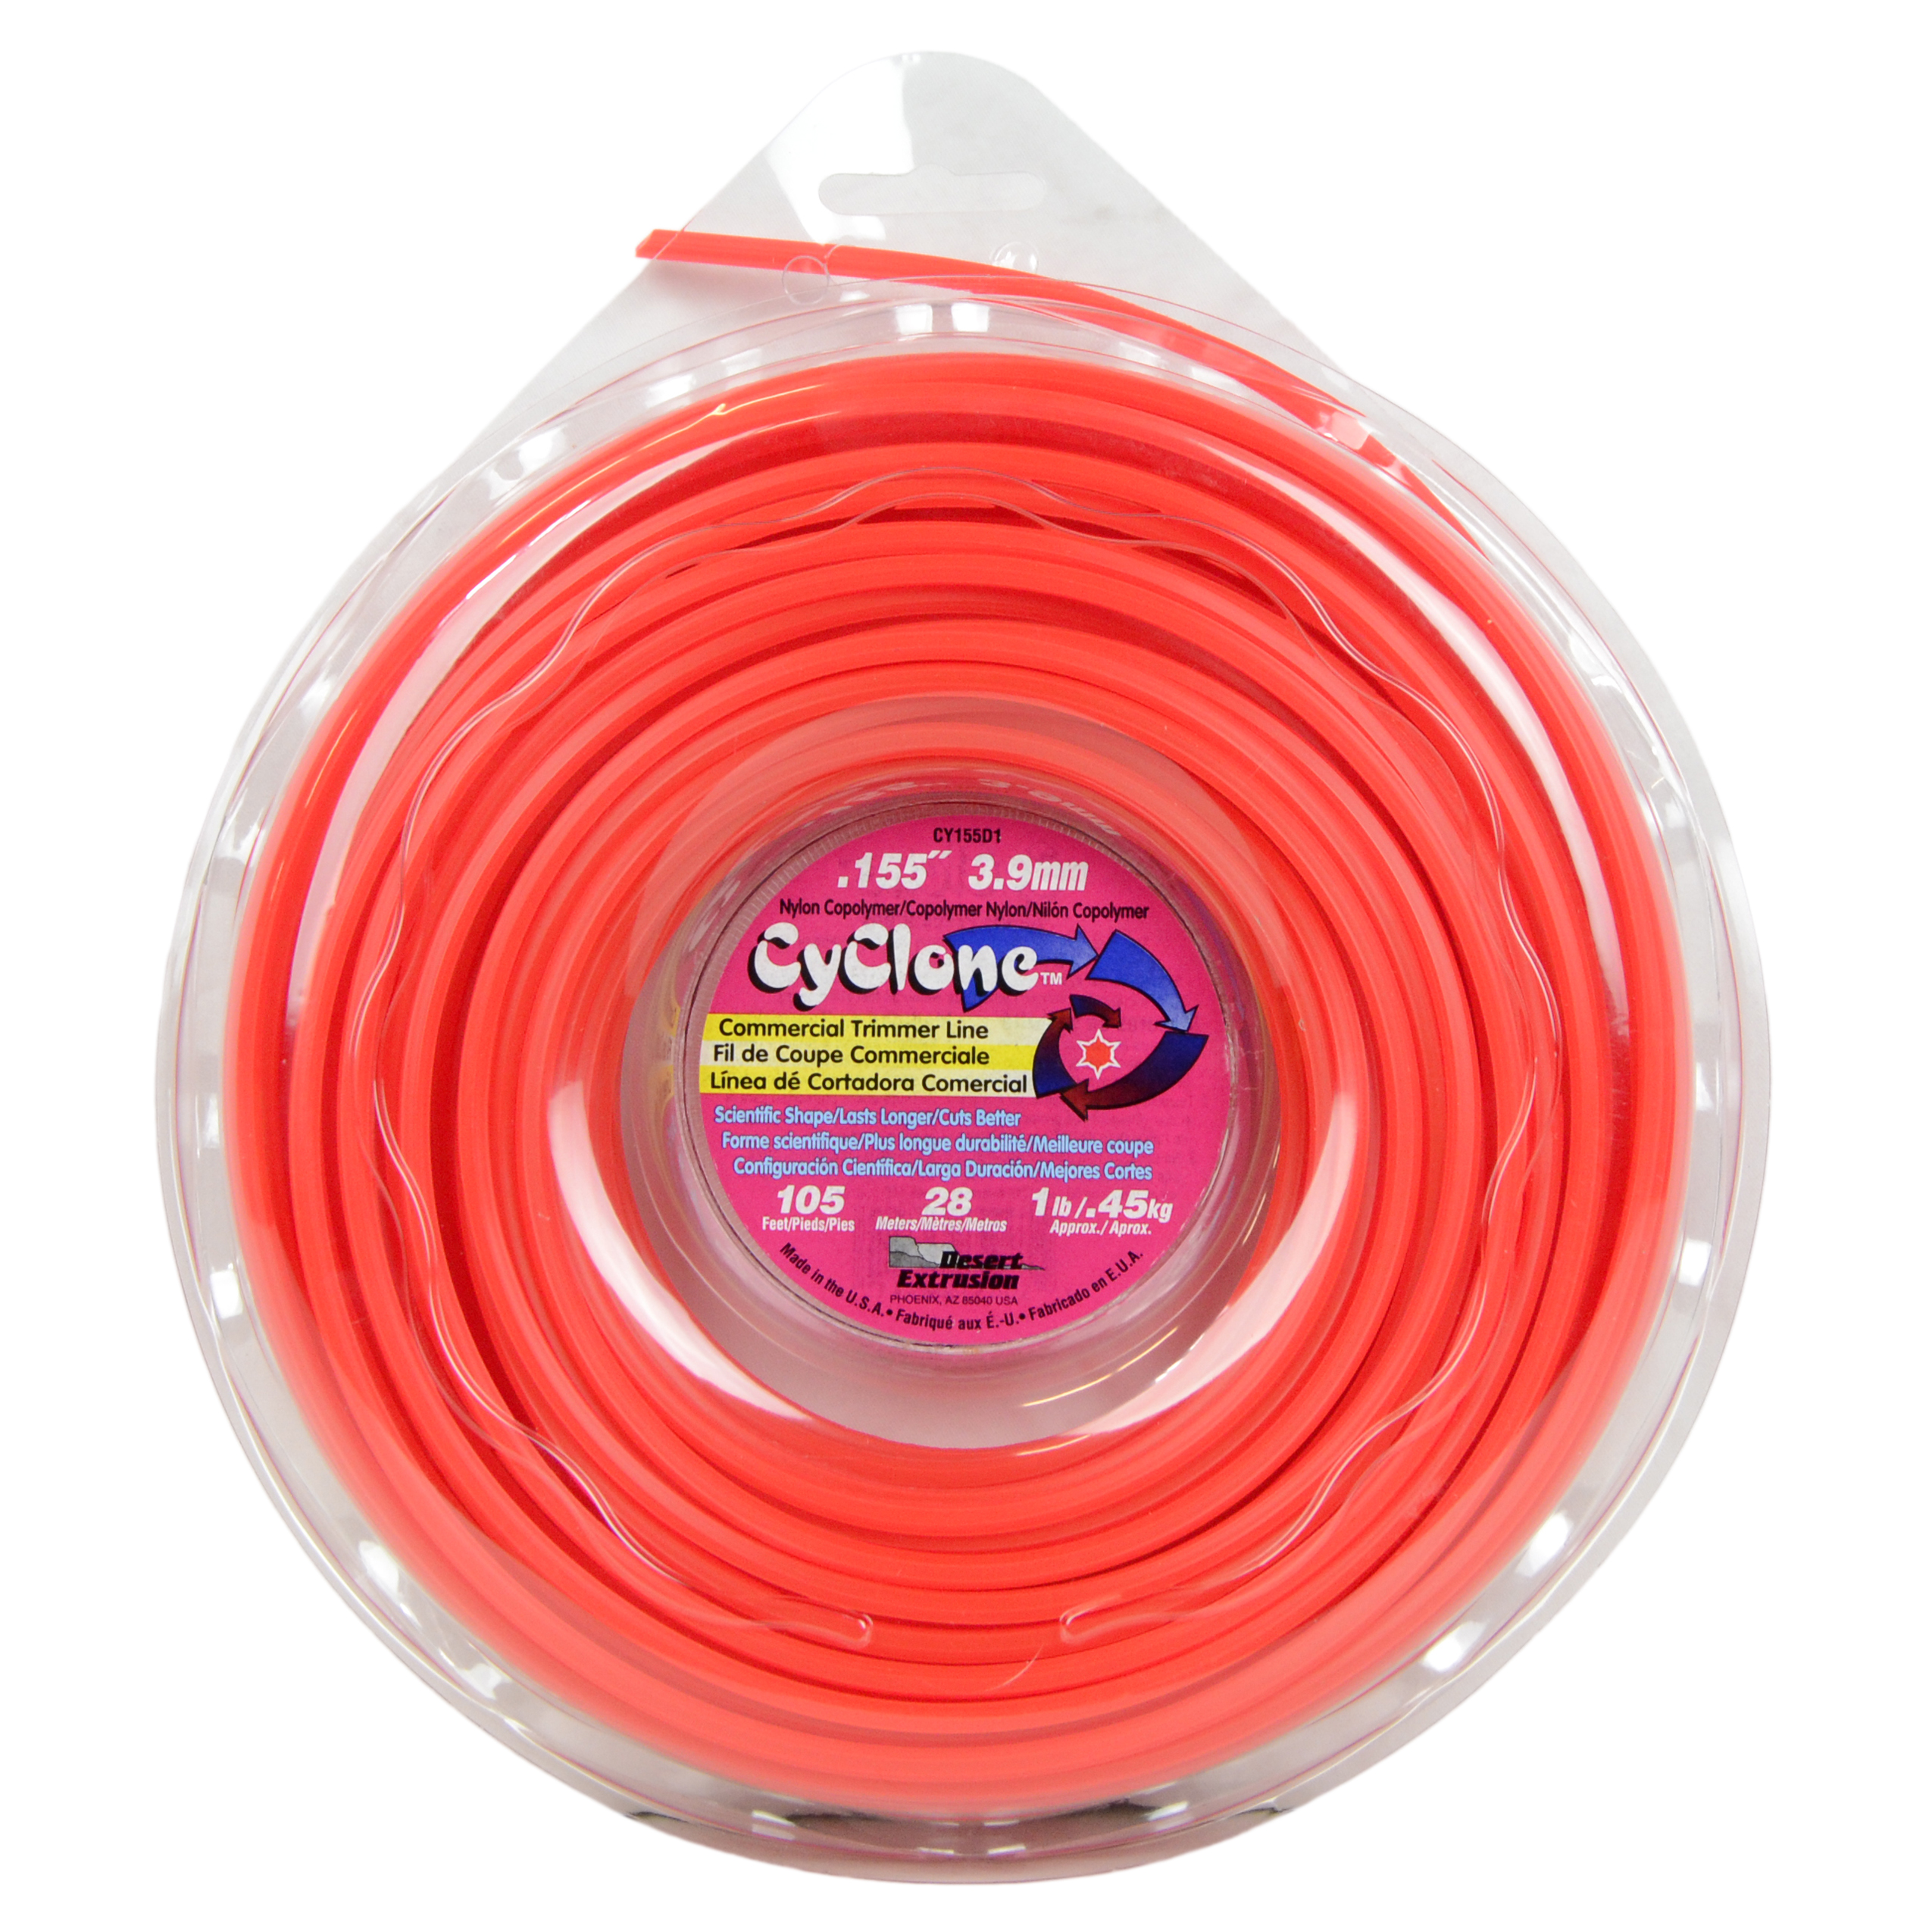 "Cyclone CY155D1 0.155"" x 155' Commercial String Trimmer Line Red, Made in the USA"